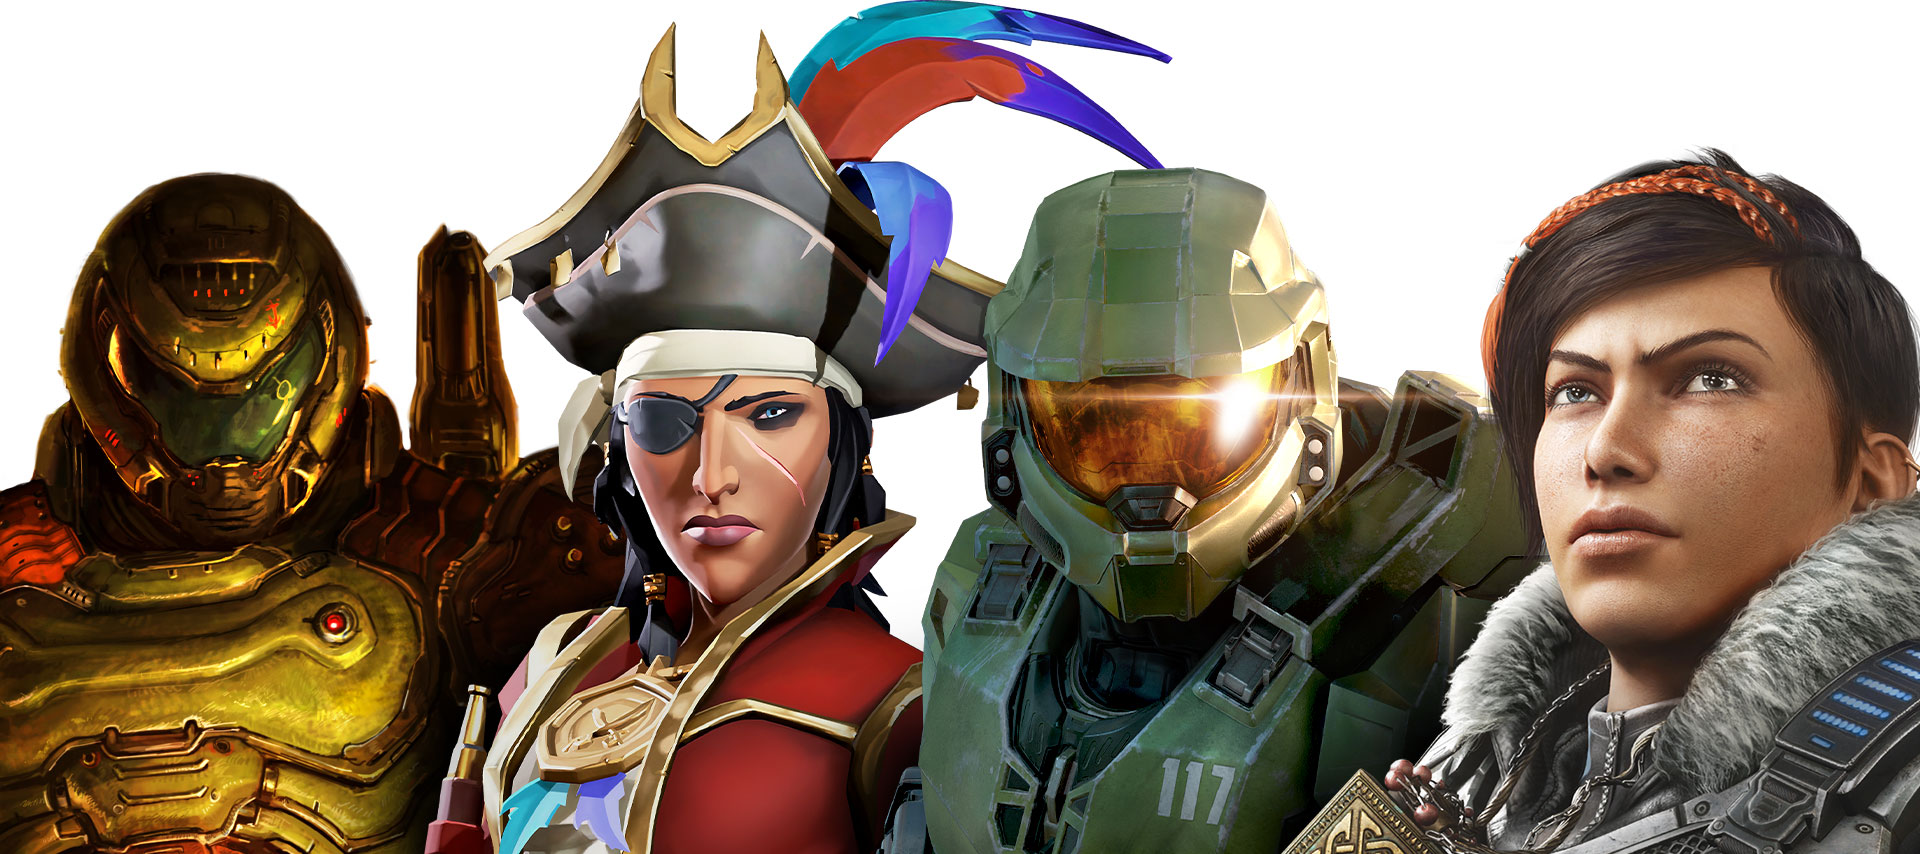 A line-up of characters featured in games on Xbox Game Pass. From left to right: DOOM Eternal, Sea of Thieves, Halo: Infinite and Gears 5.